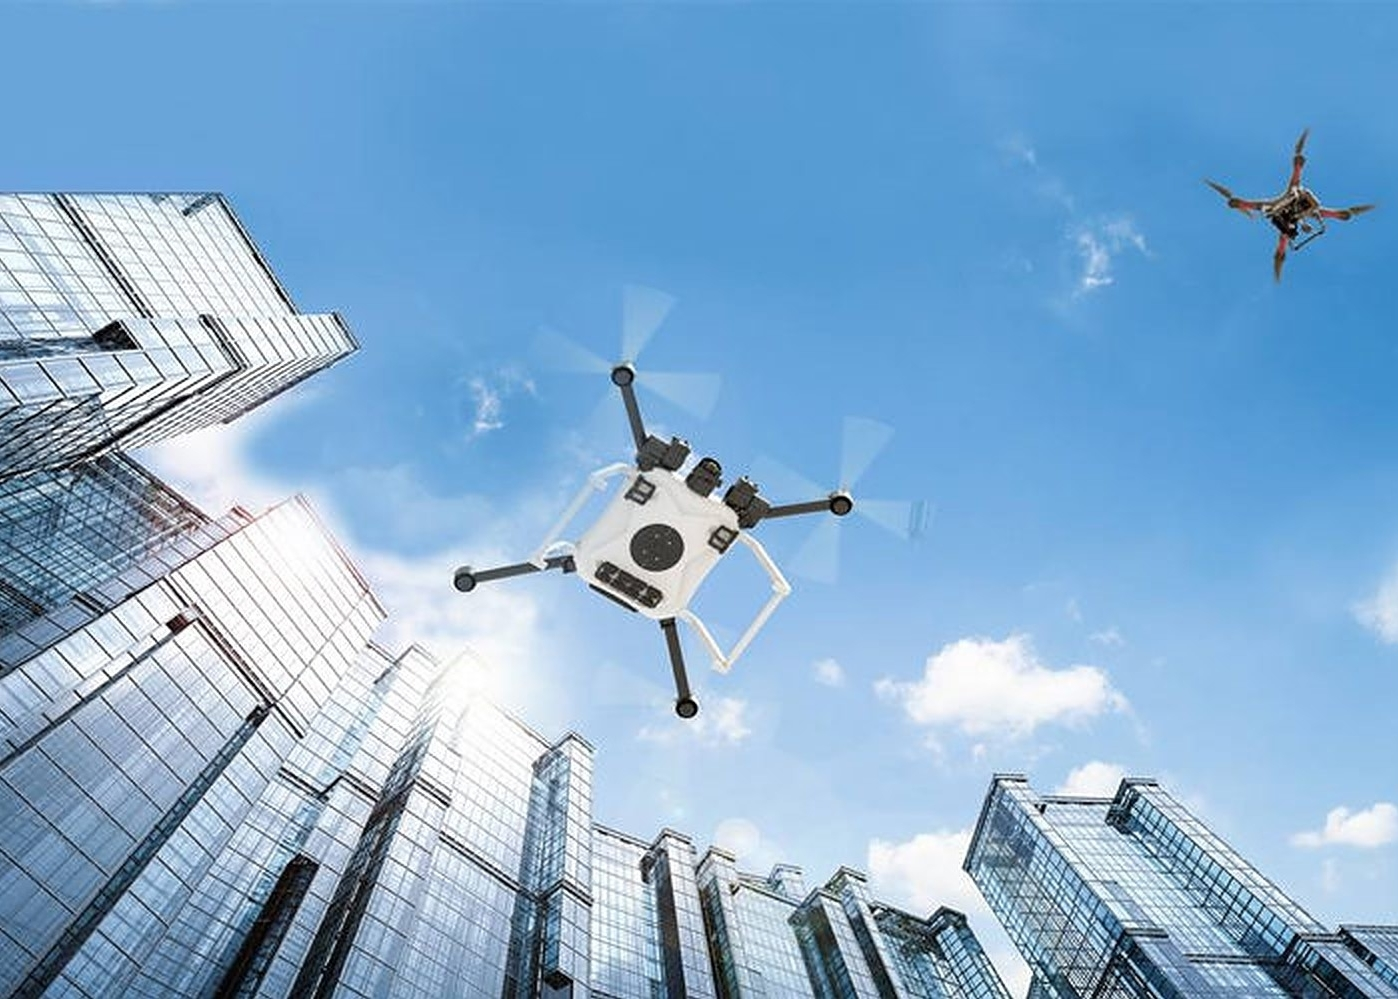 FAA will require drones to have remote ID